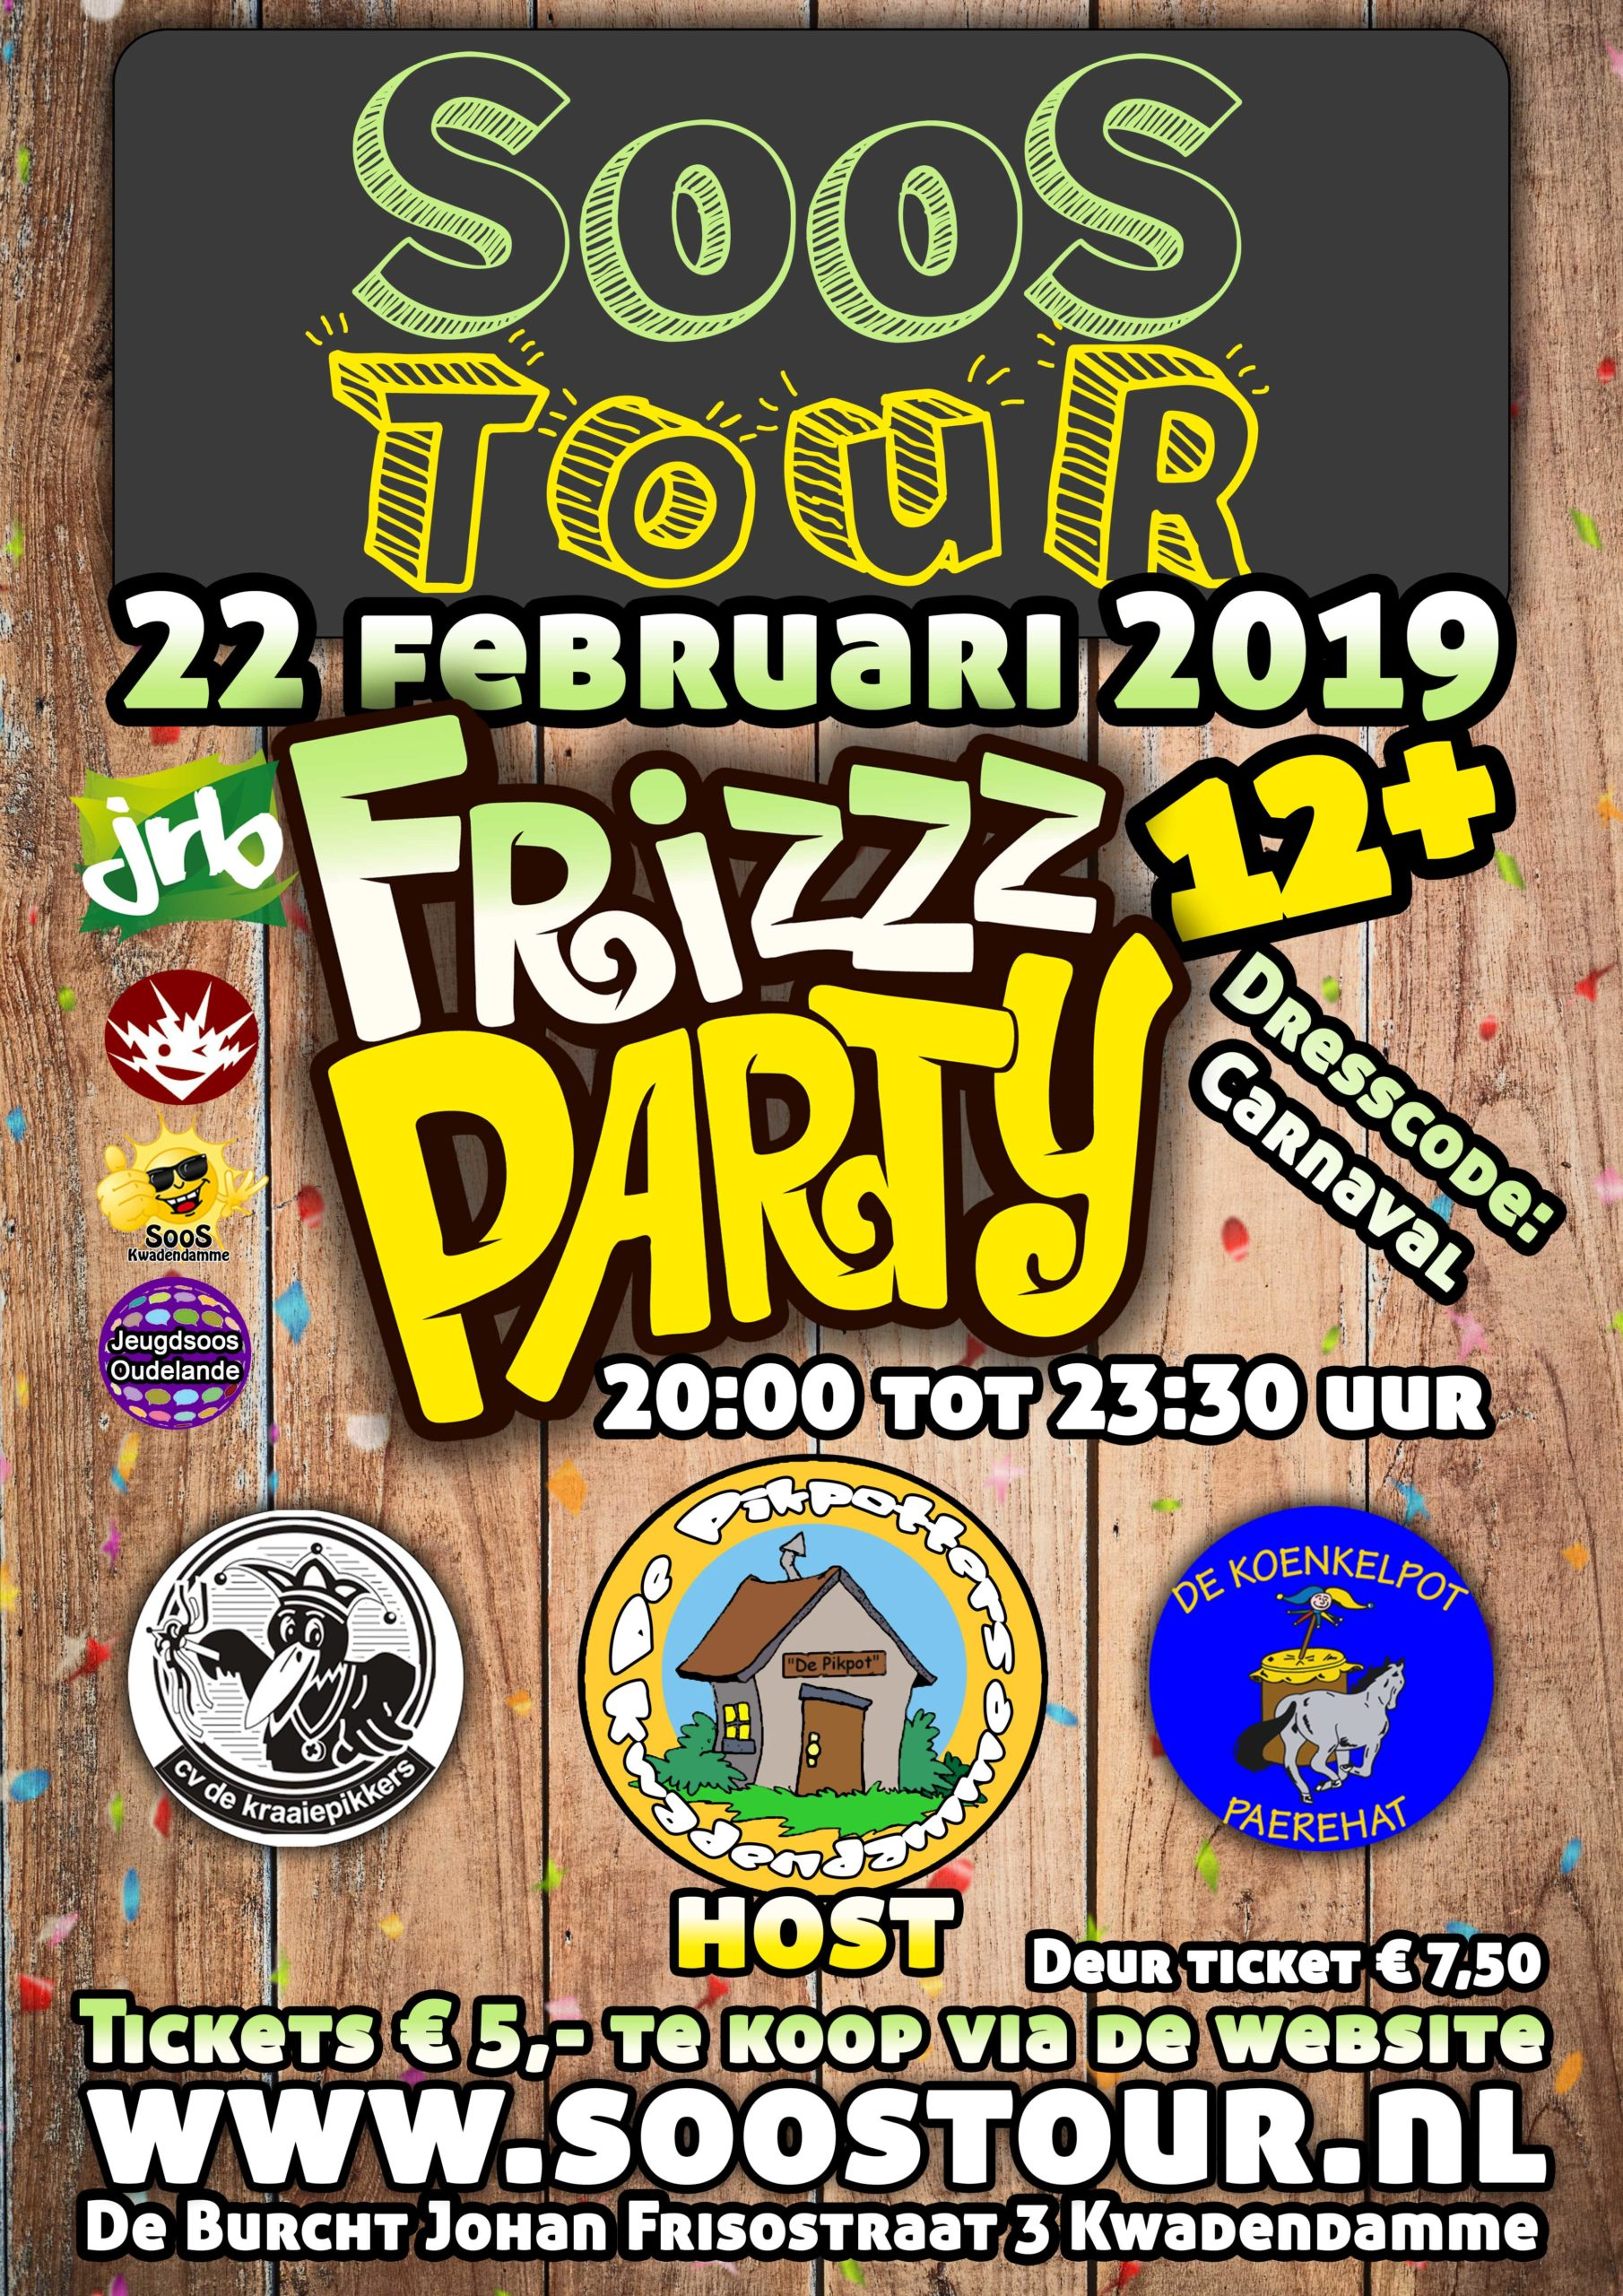 Frizzparty Carnaval 2019